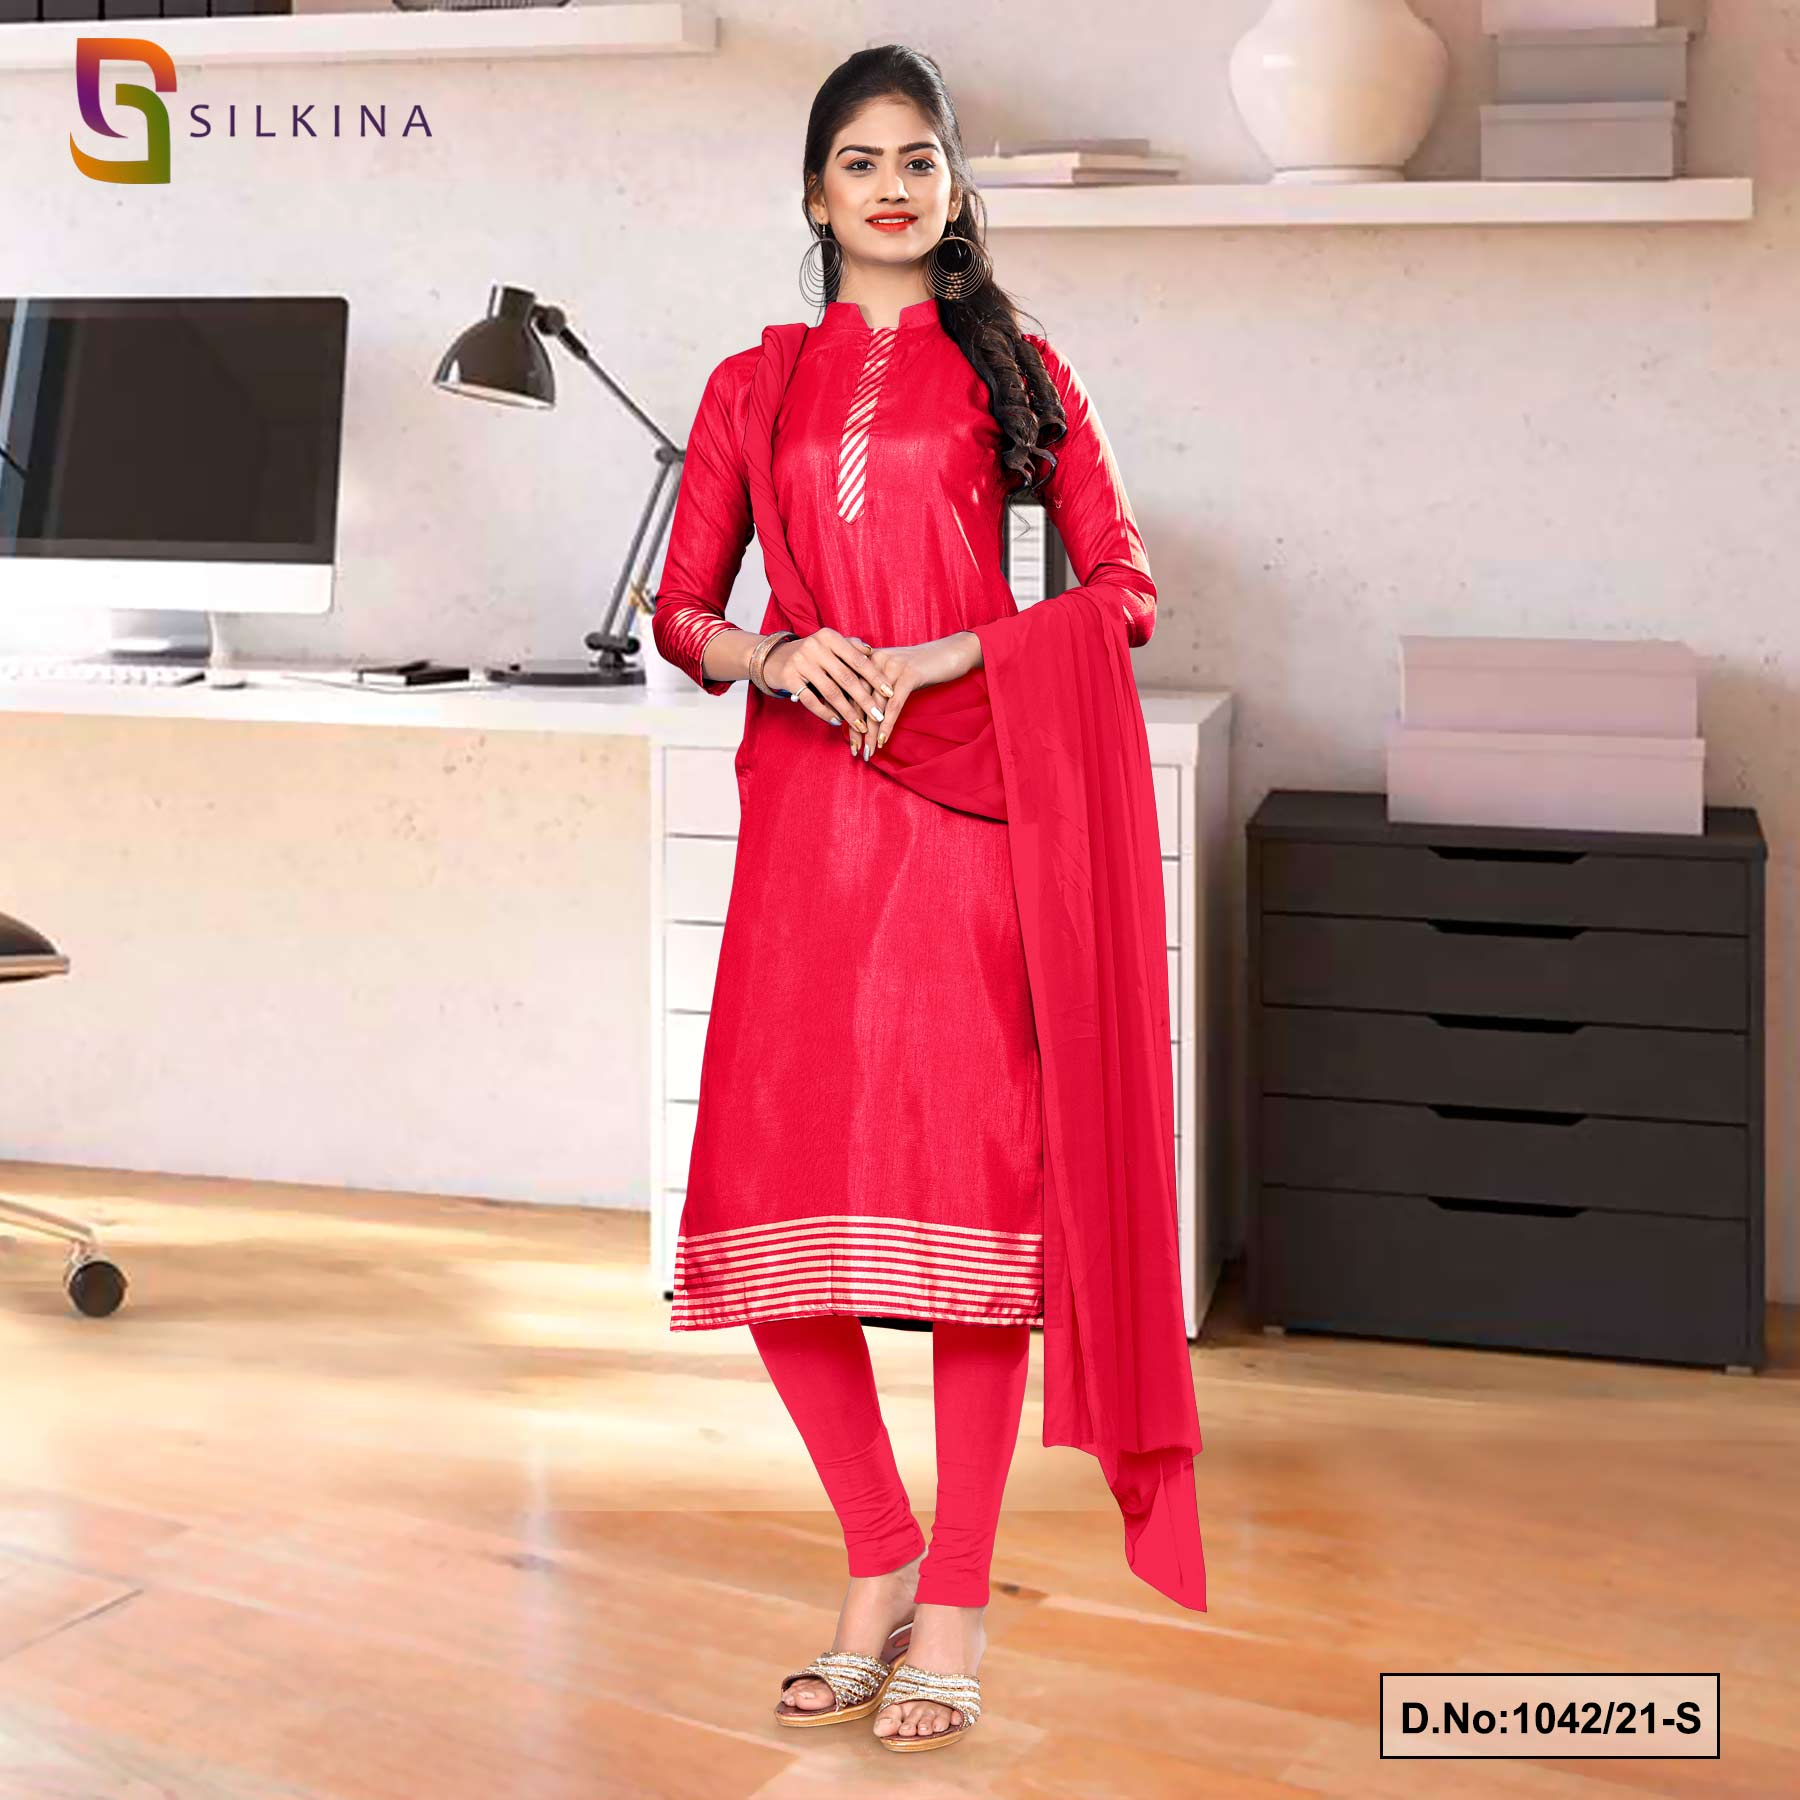 Carrot Pink Plain Border Premium Polycotton Raw Silk Salwar Kameez for Employee Uniform Sarees